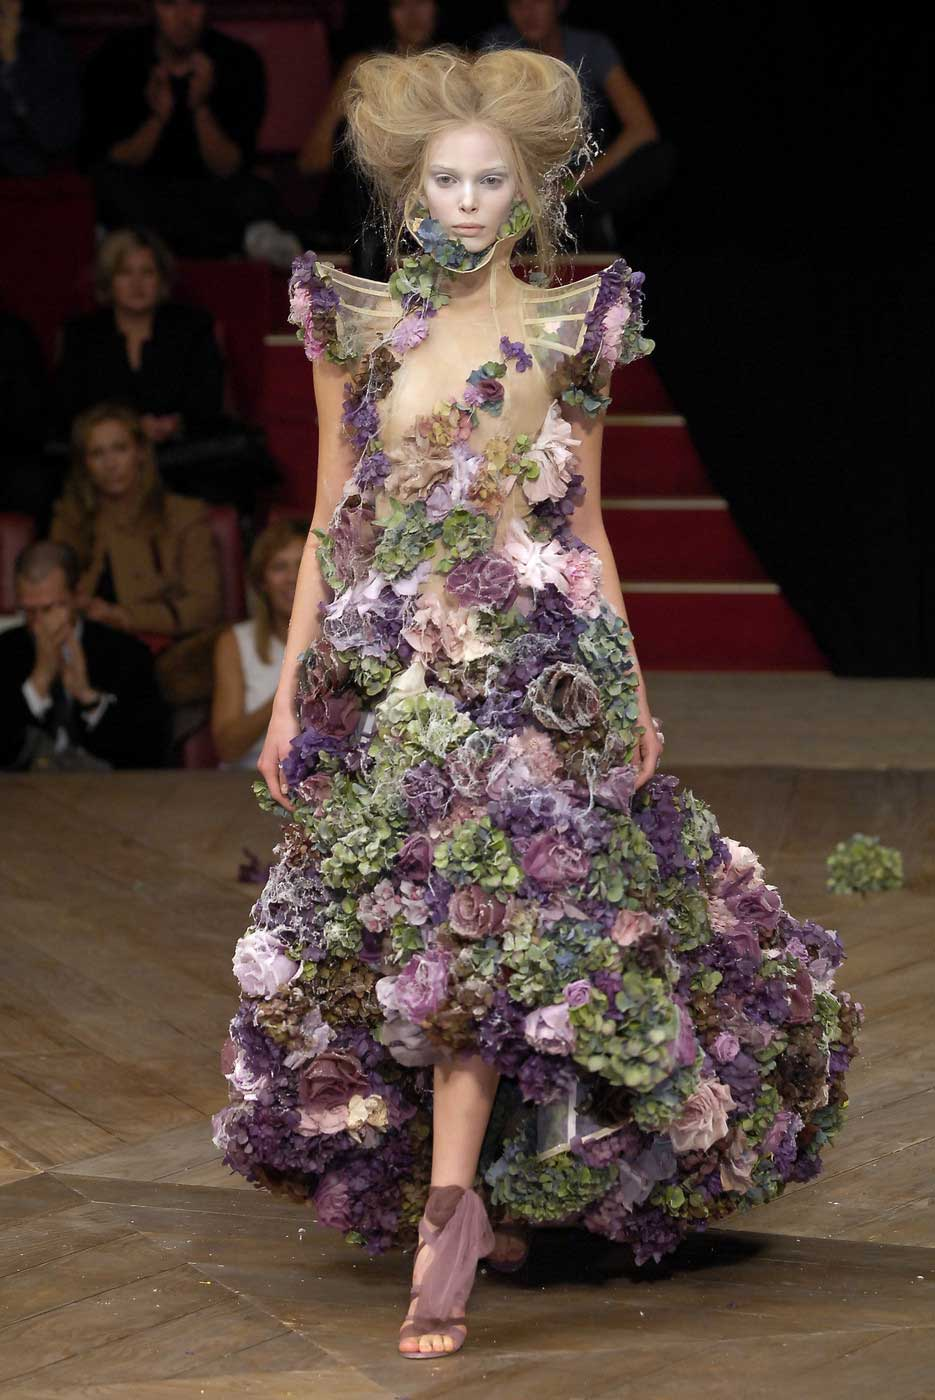 Fashion Inspired By The Garden Haute Couture And Horticulture Todd Haiman Landscape Design